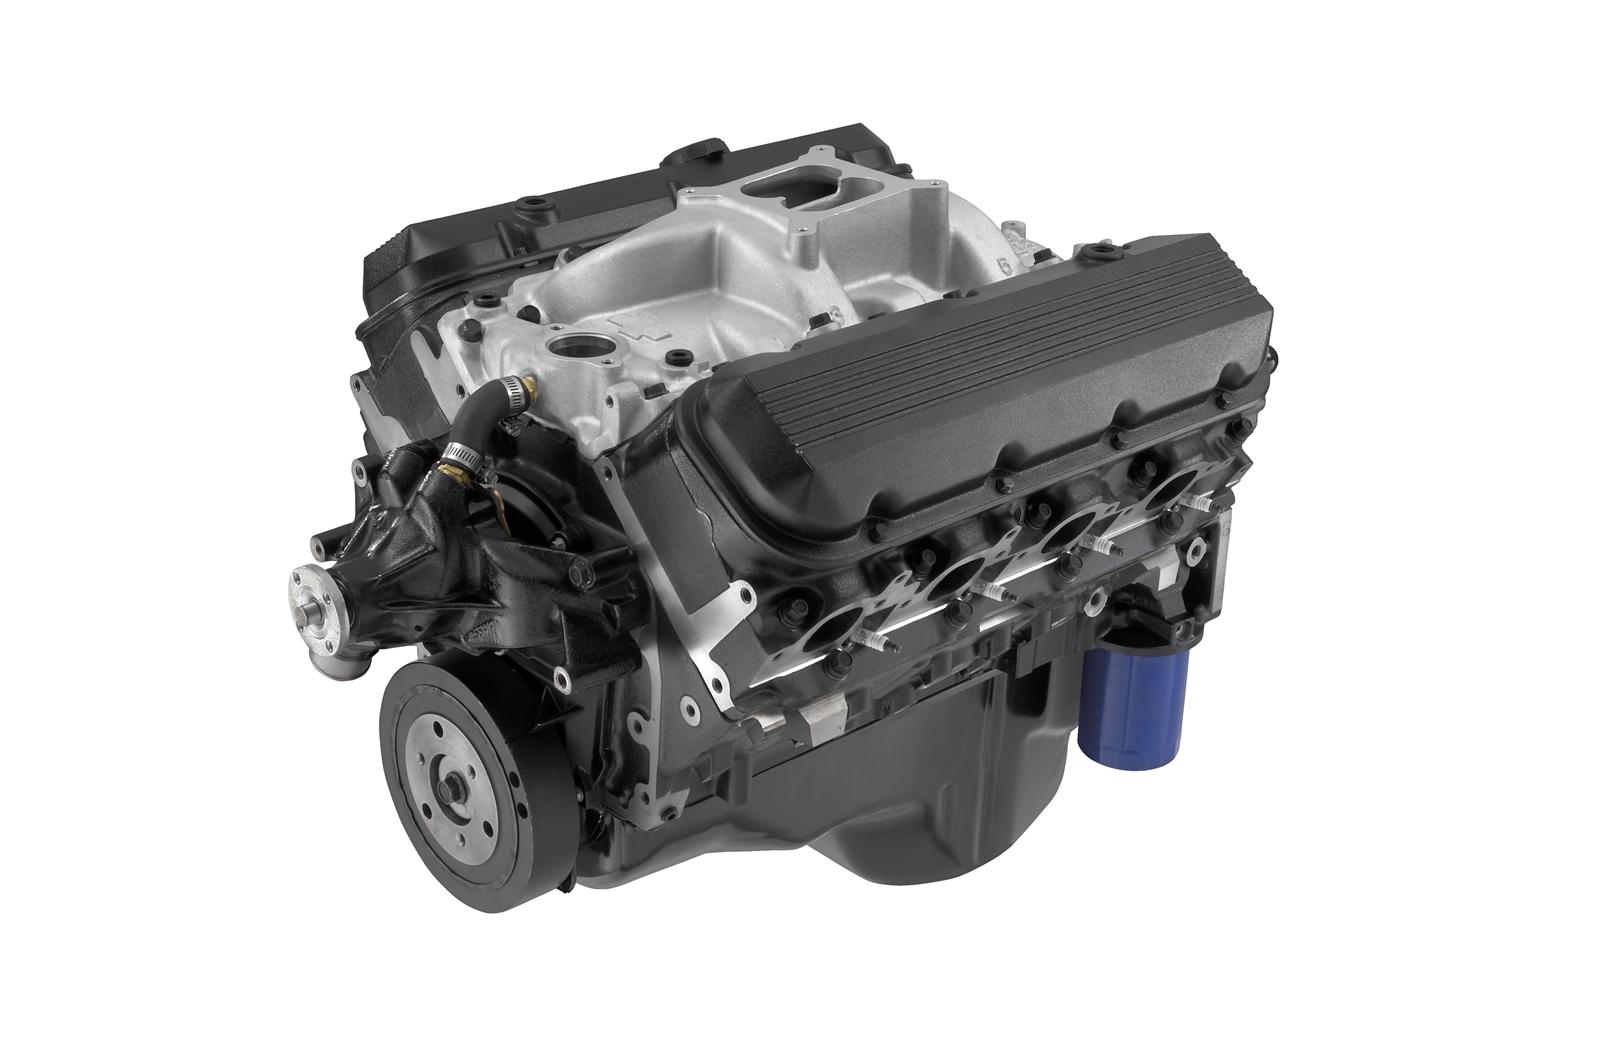 hight resolution of chevrolet performance 454 c i d ho 438 hp long block crate engines 12568774 free shipping on orders over 99 at summit racing